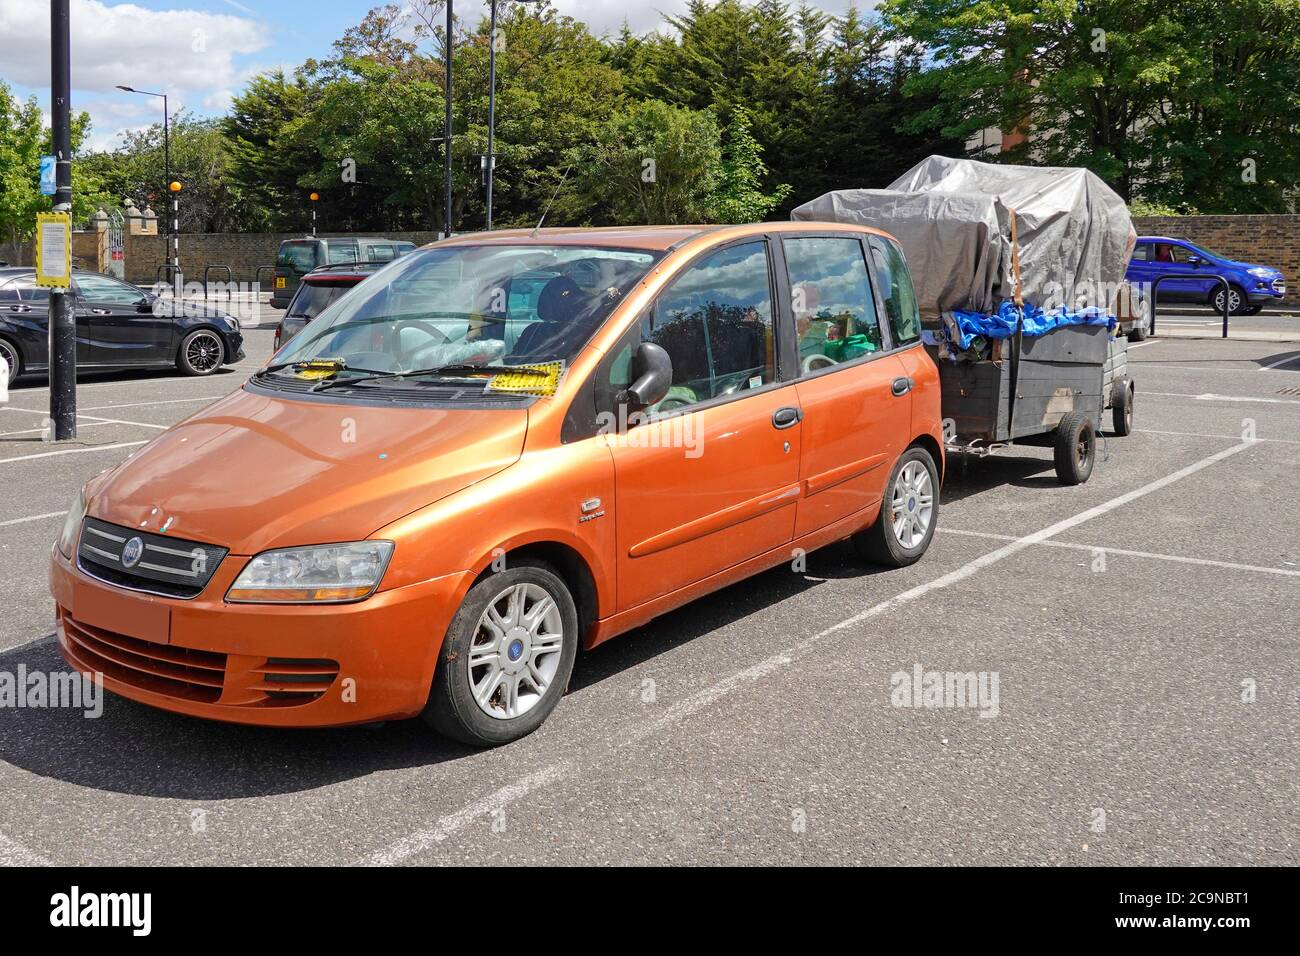 Misfortunes maybe or  expensive mistake parking chattels inside car & two loaded trailers in two bays of pay & display car park lot Essex England UK Stock Photo